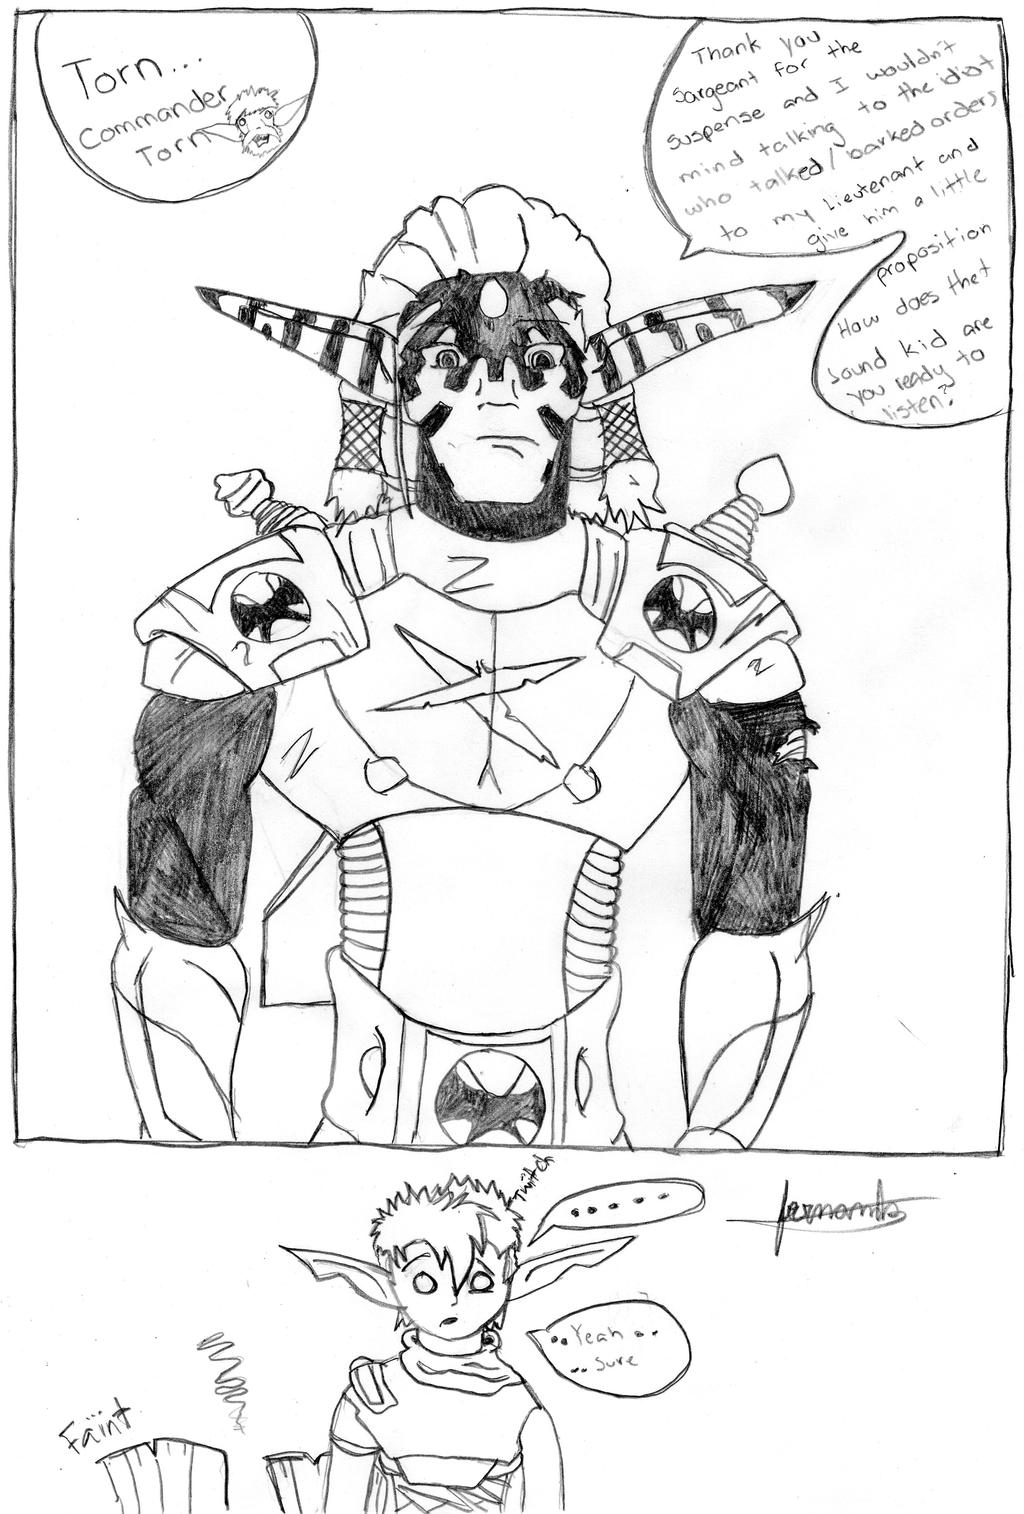 Jak And Daxter The Fall Of Lake Village Pg 11 By Jak And Daxter Coloring Pages